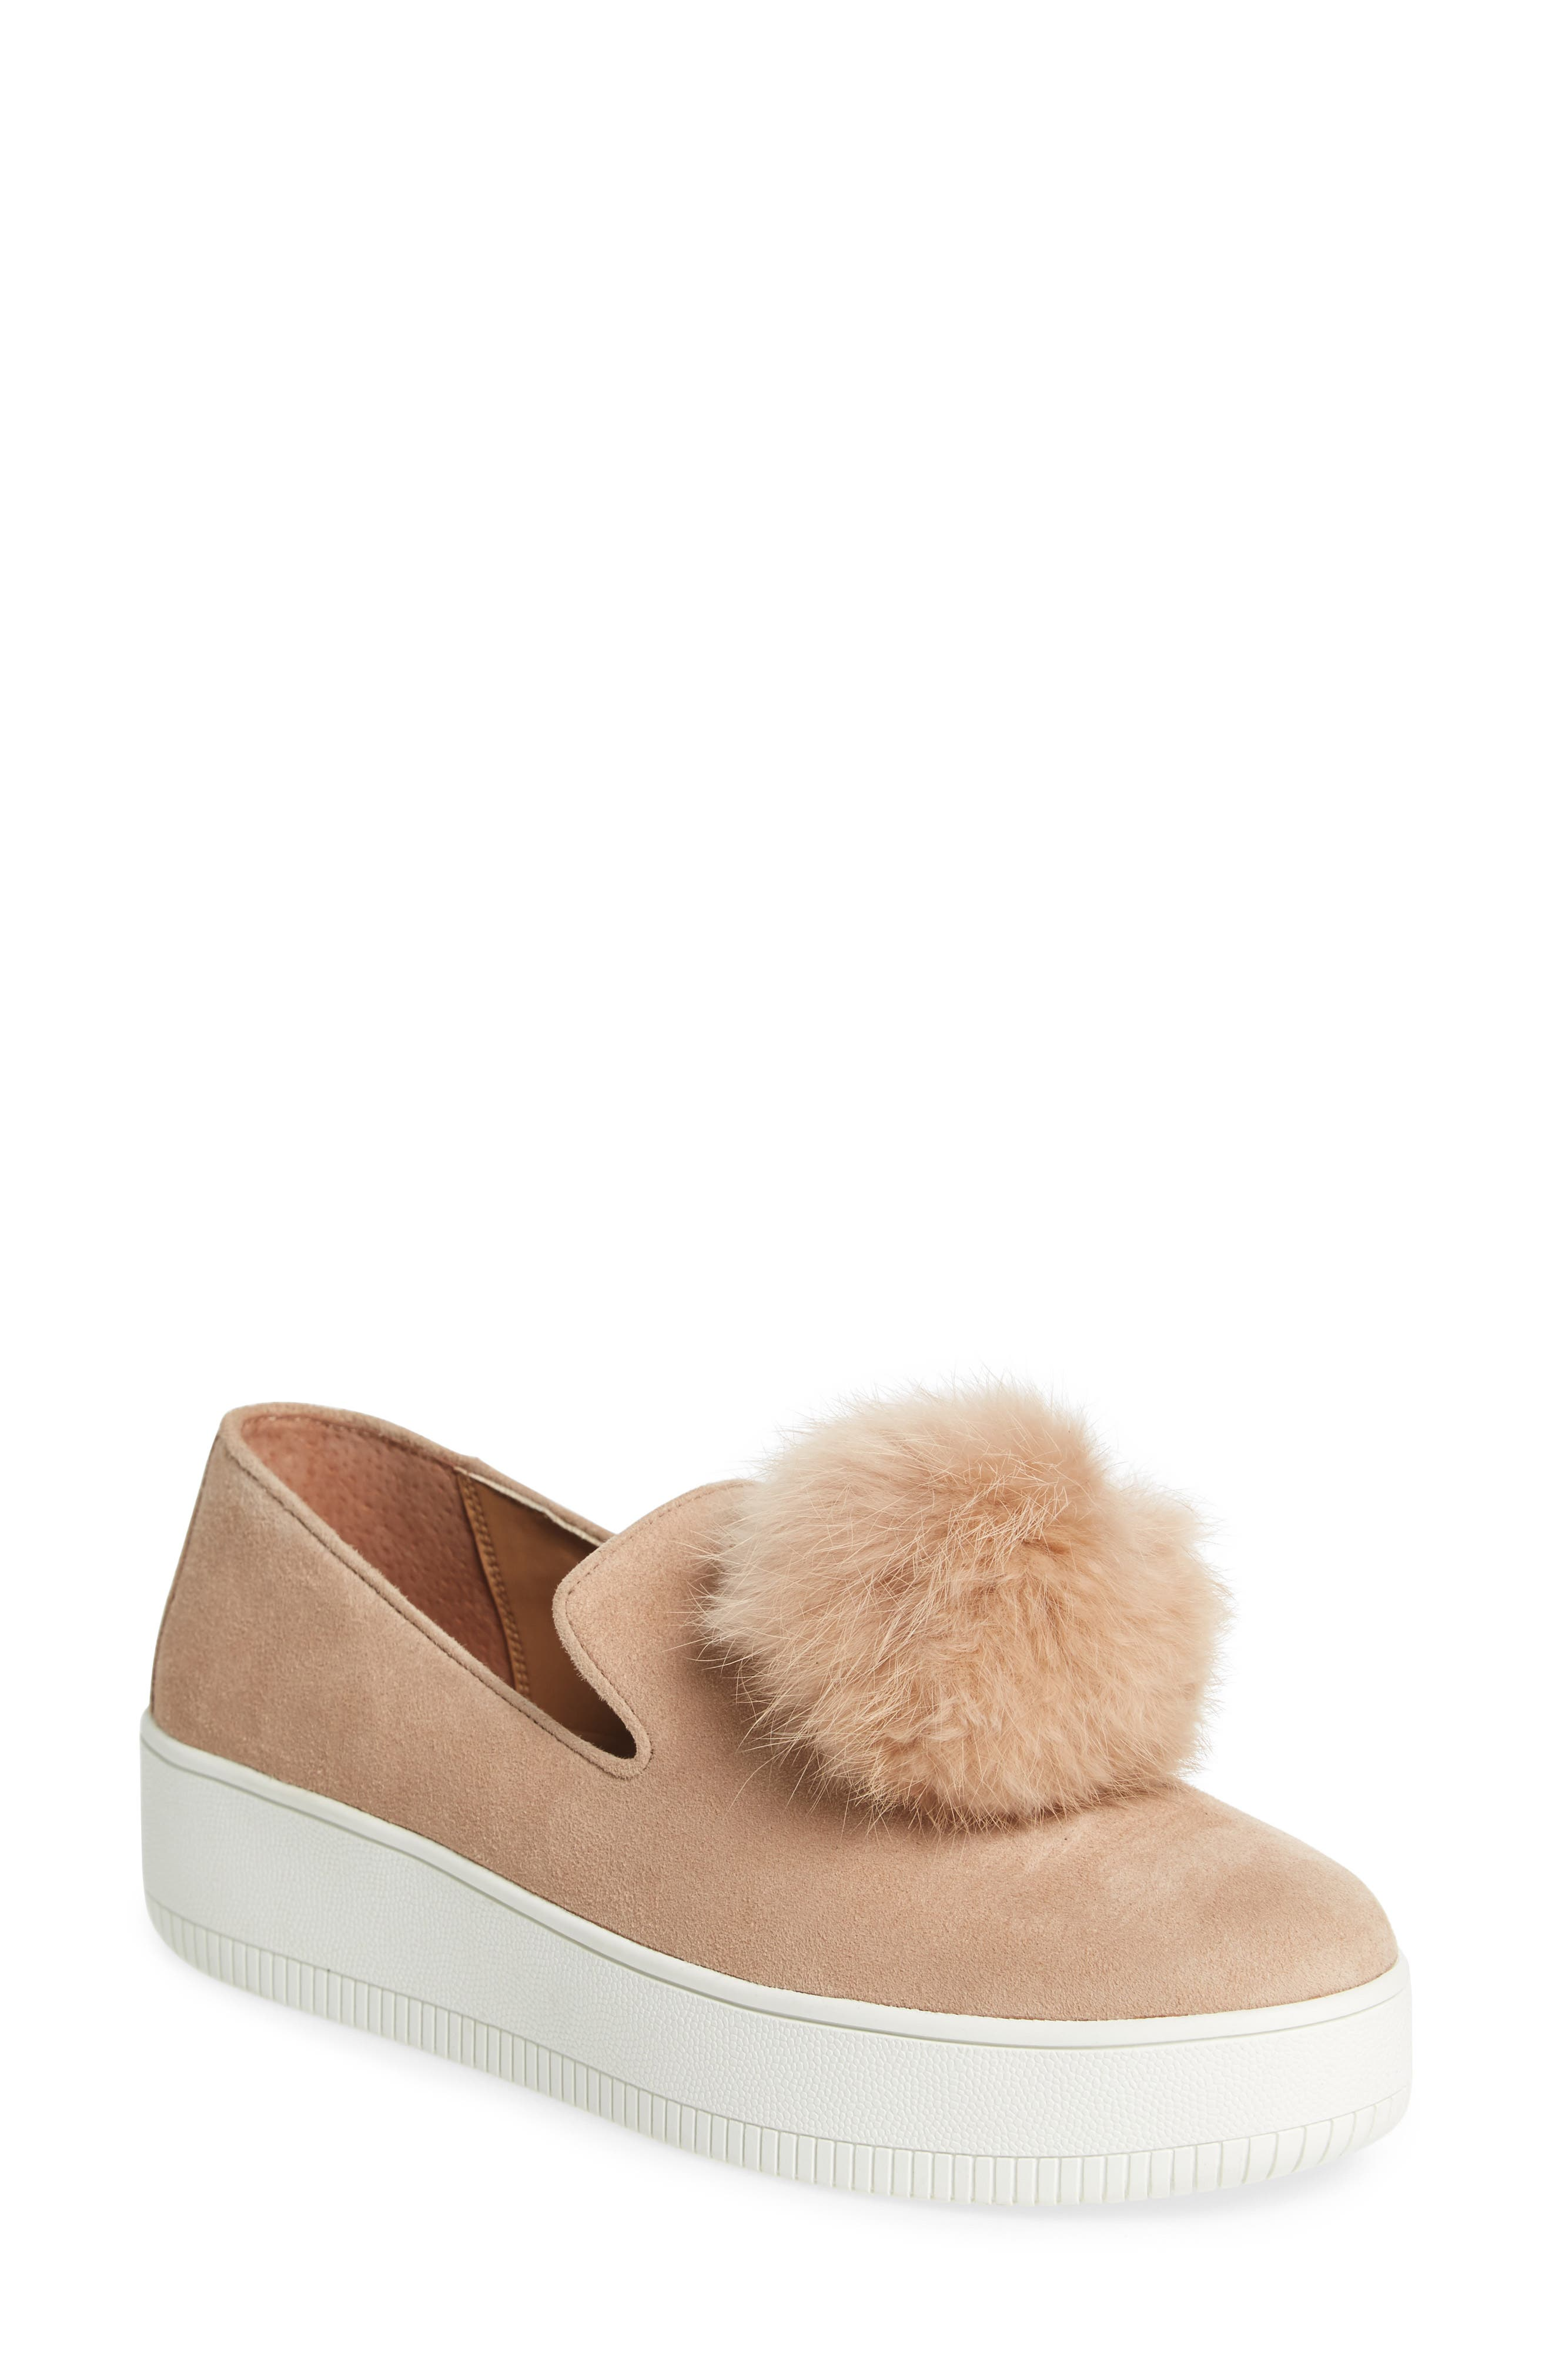 Linea Paolo Sammy Platform Sneaker with Genuine Rabbit Fur Pompom (Women)